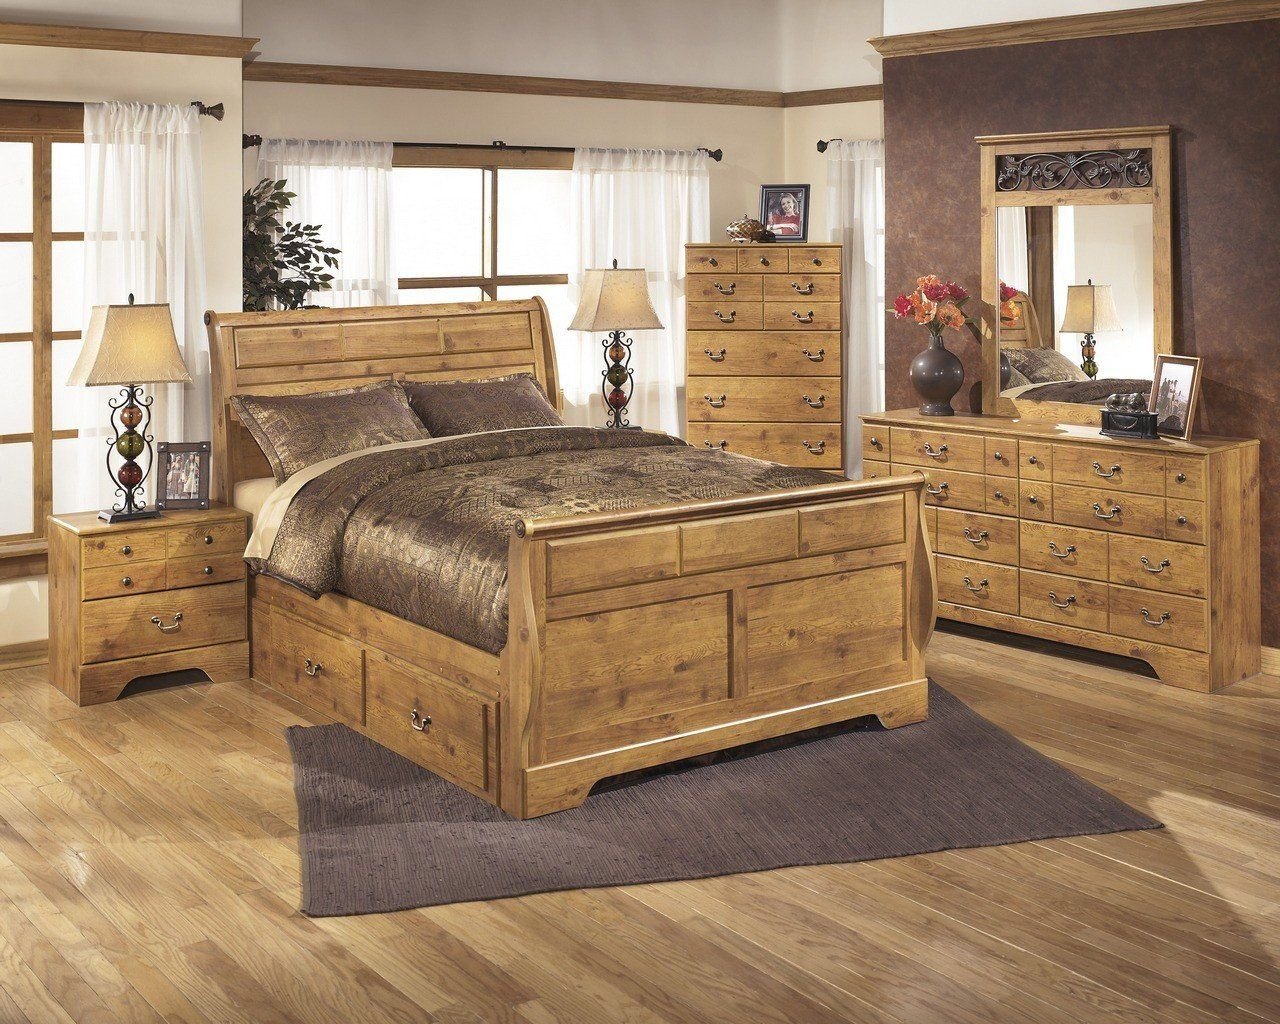 Natural Wood Bedroom Set Bedroom Set Eight Unclaimed Freight in